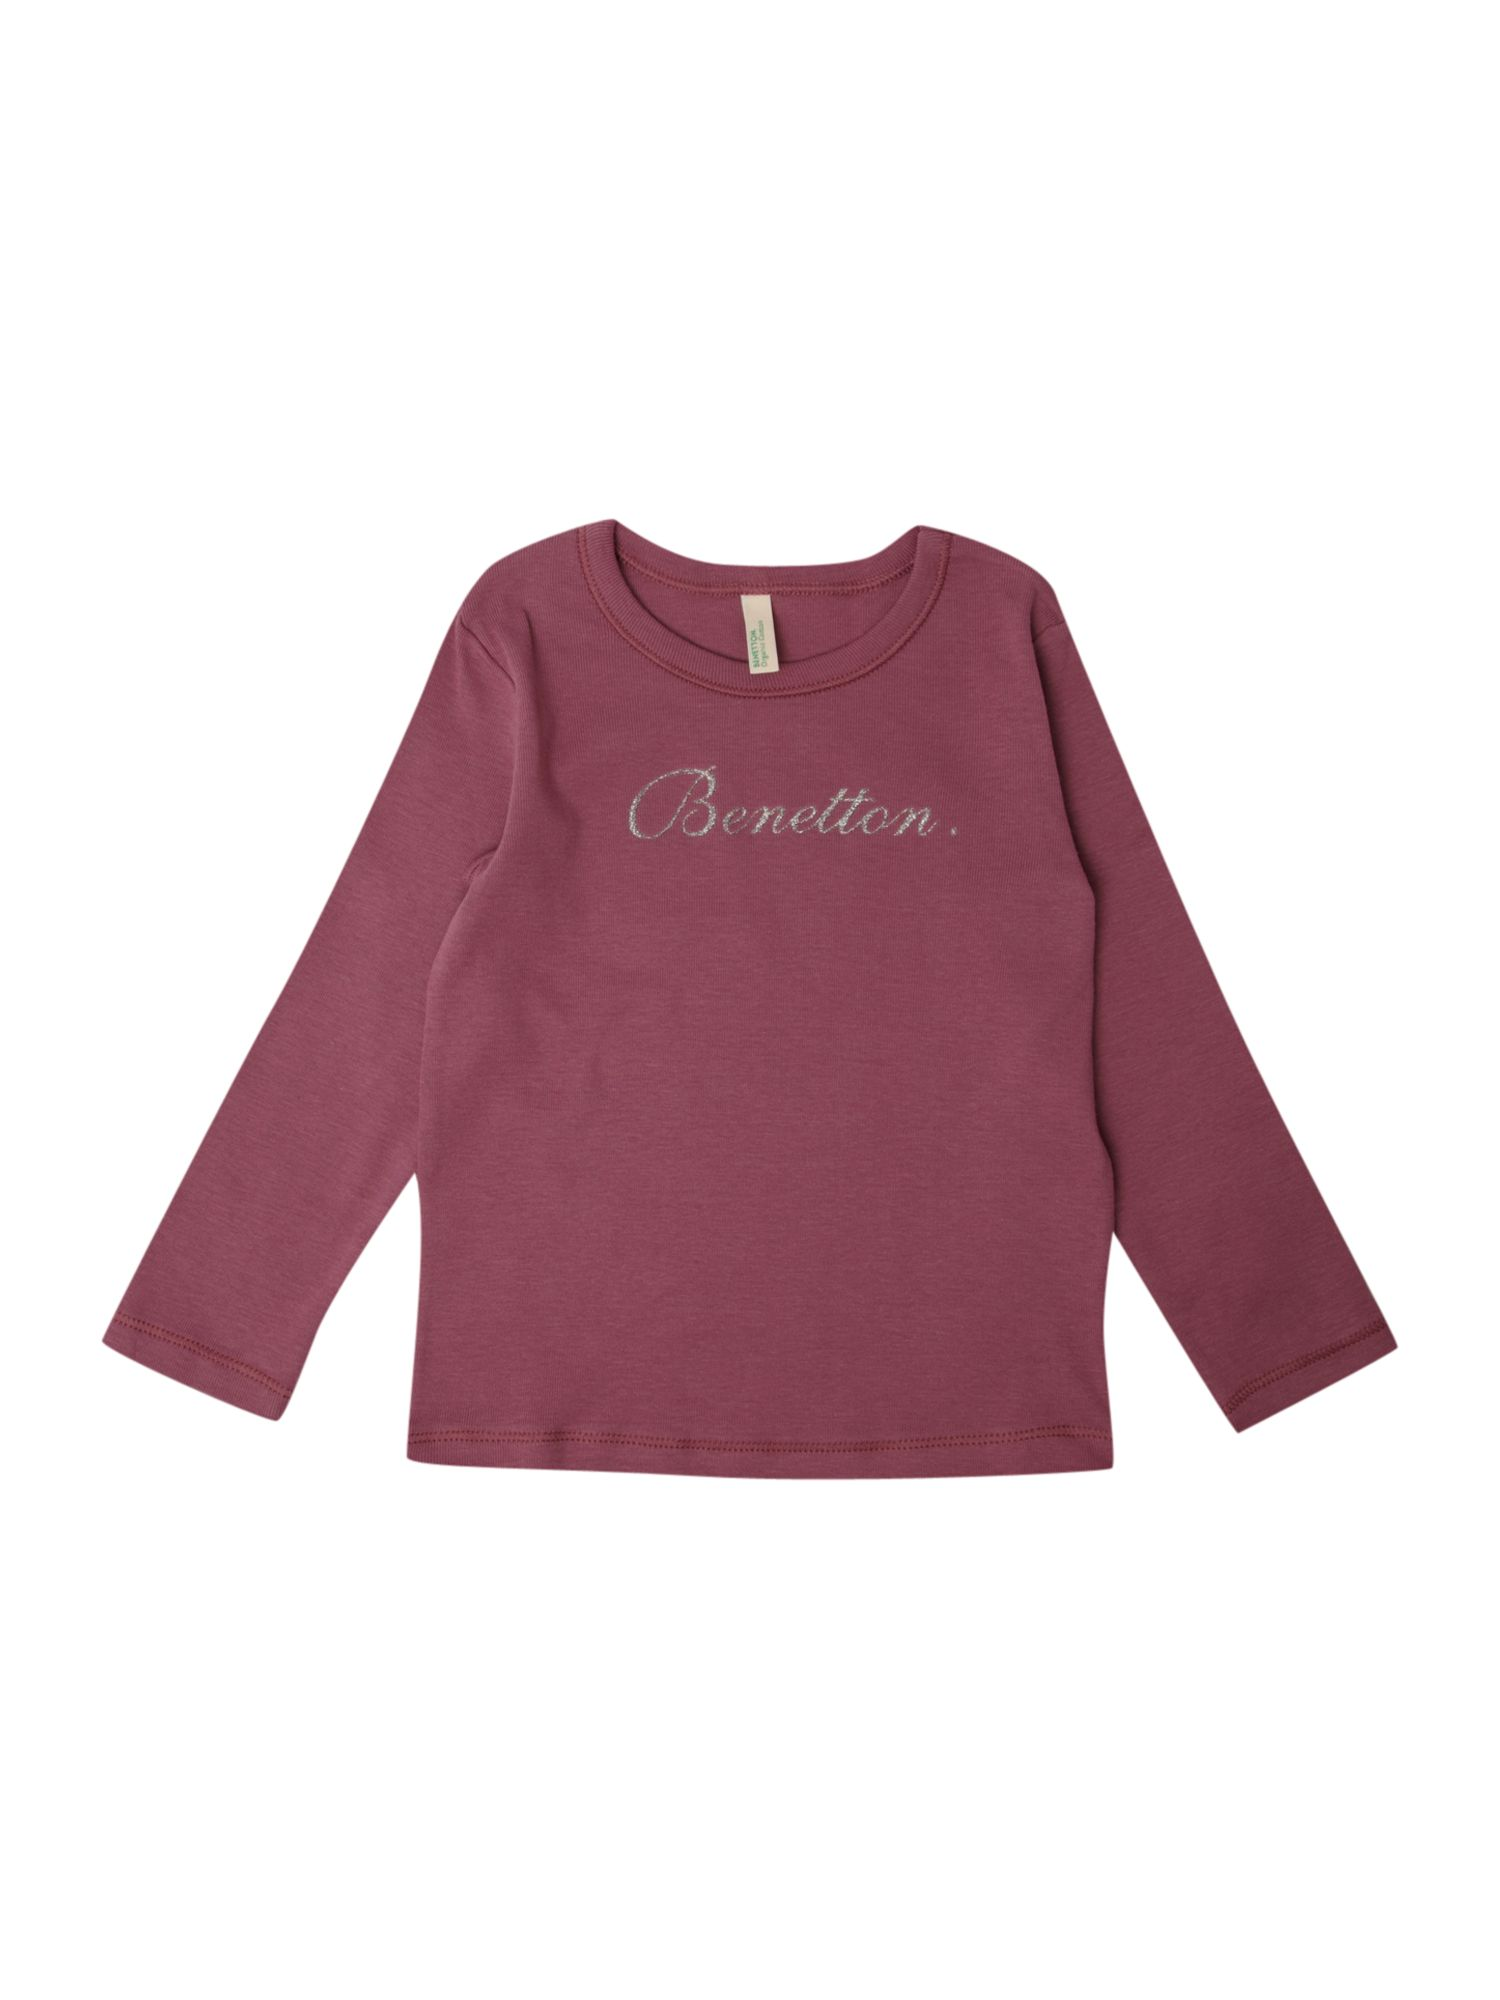 Benetton Long-sleeved printed t-shirt, Light product image